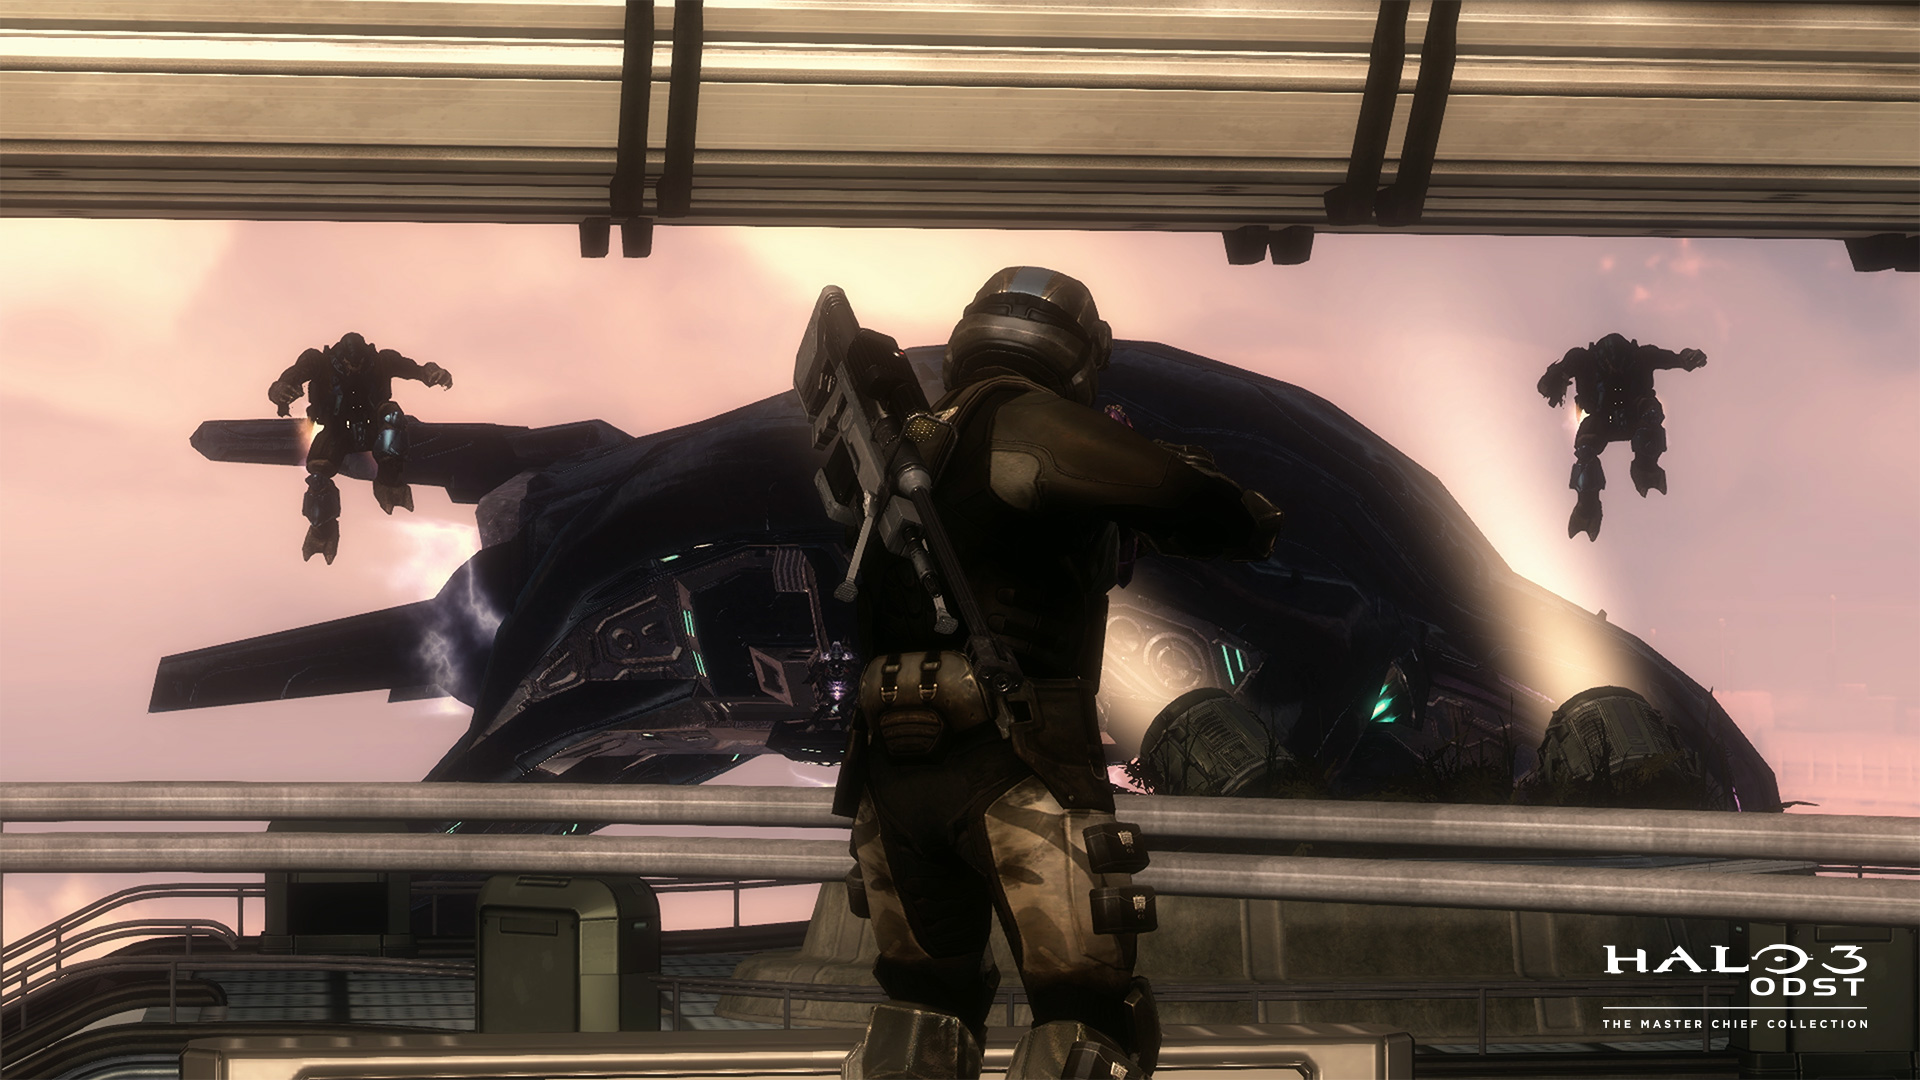 Halo 3: ODST – Halo: The Master Chief Collection